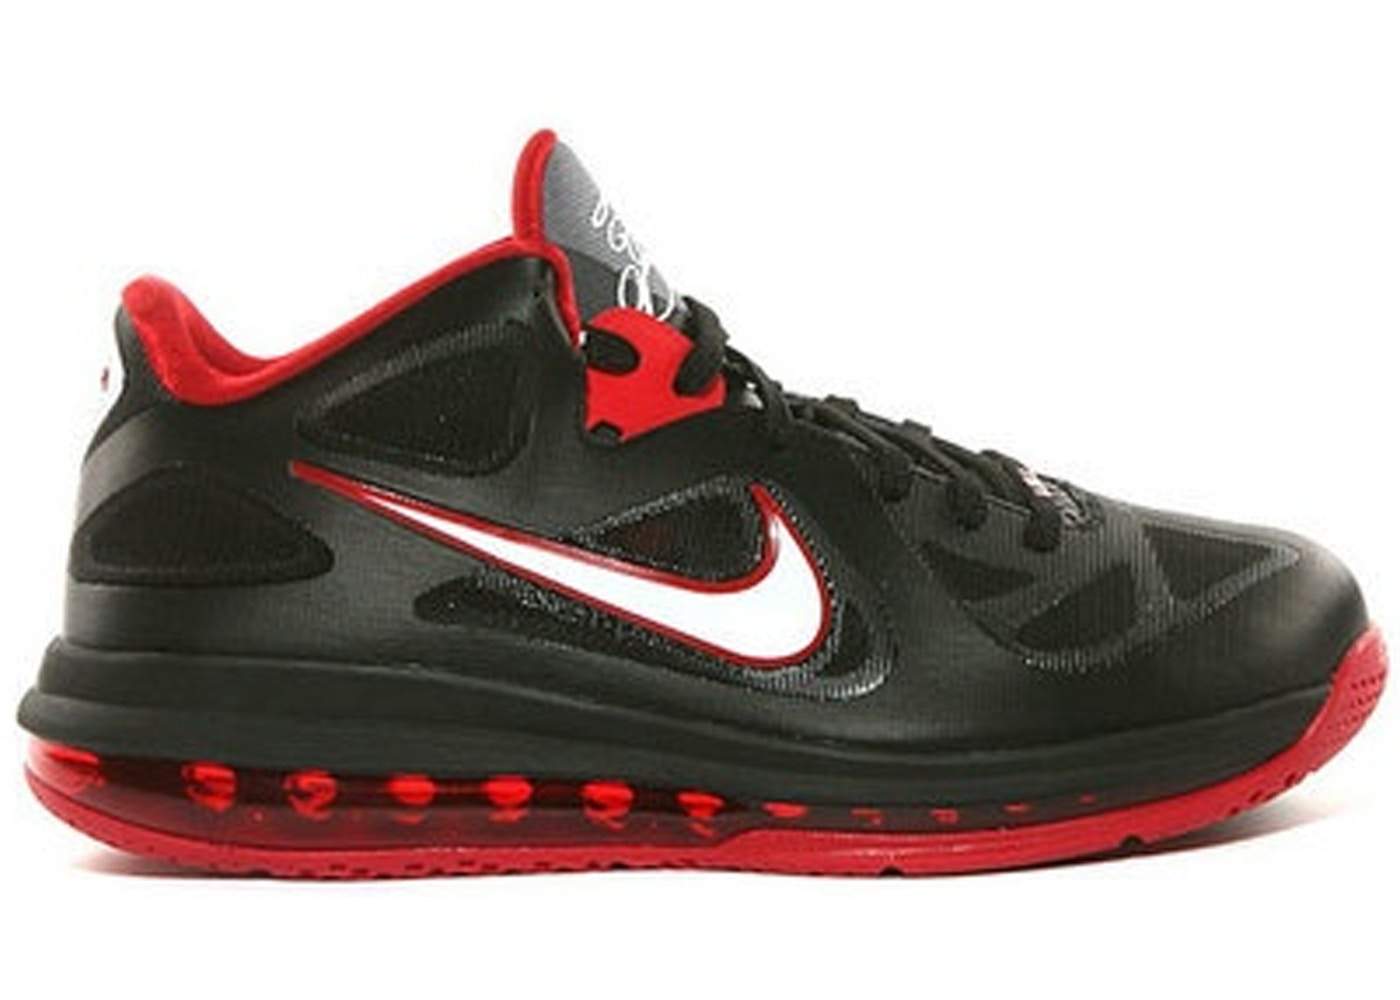 online store 777d1 6681d Nike LeBron 9 Shoes - Release Date